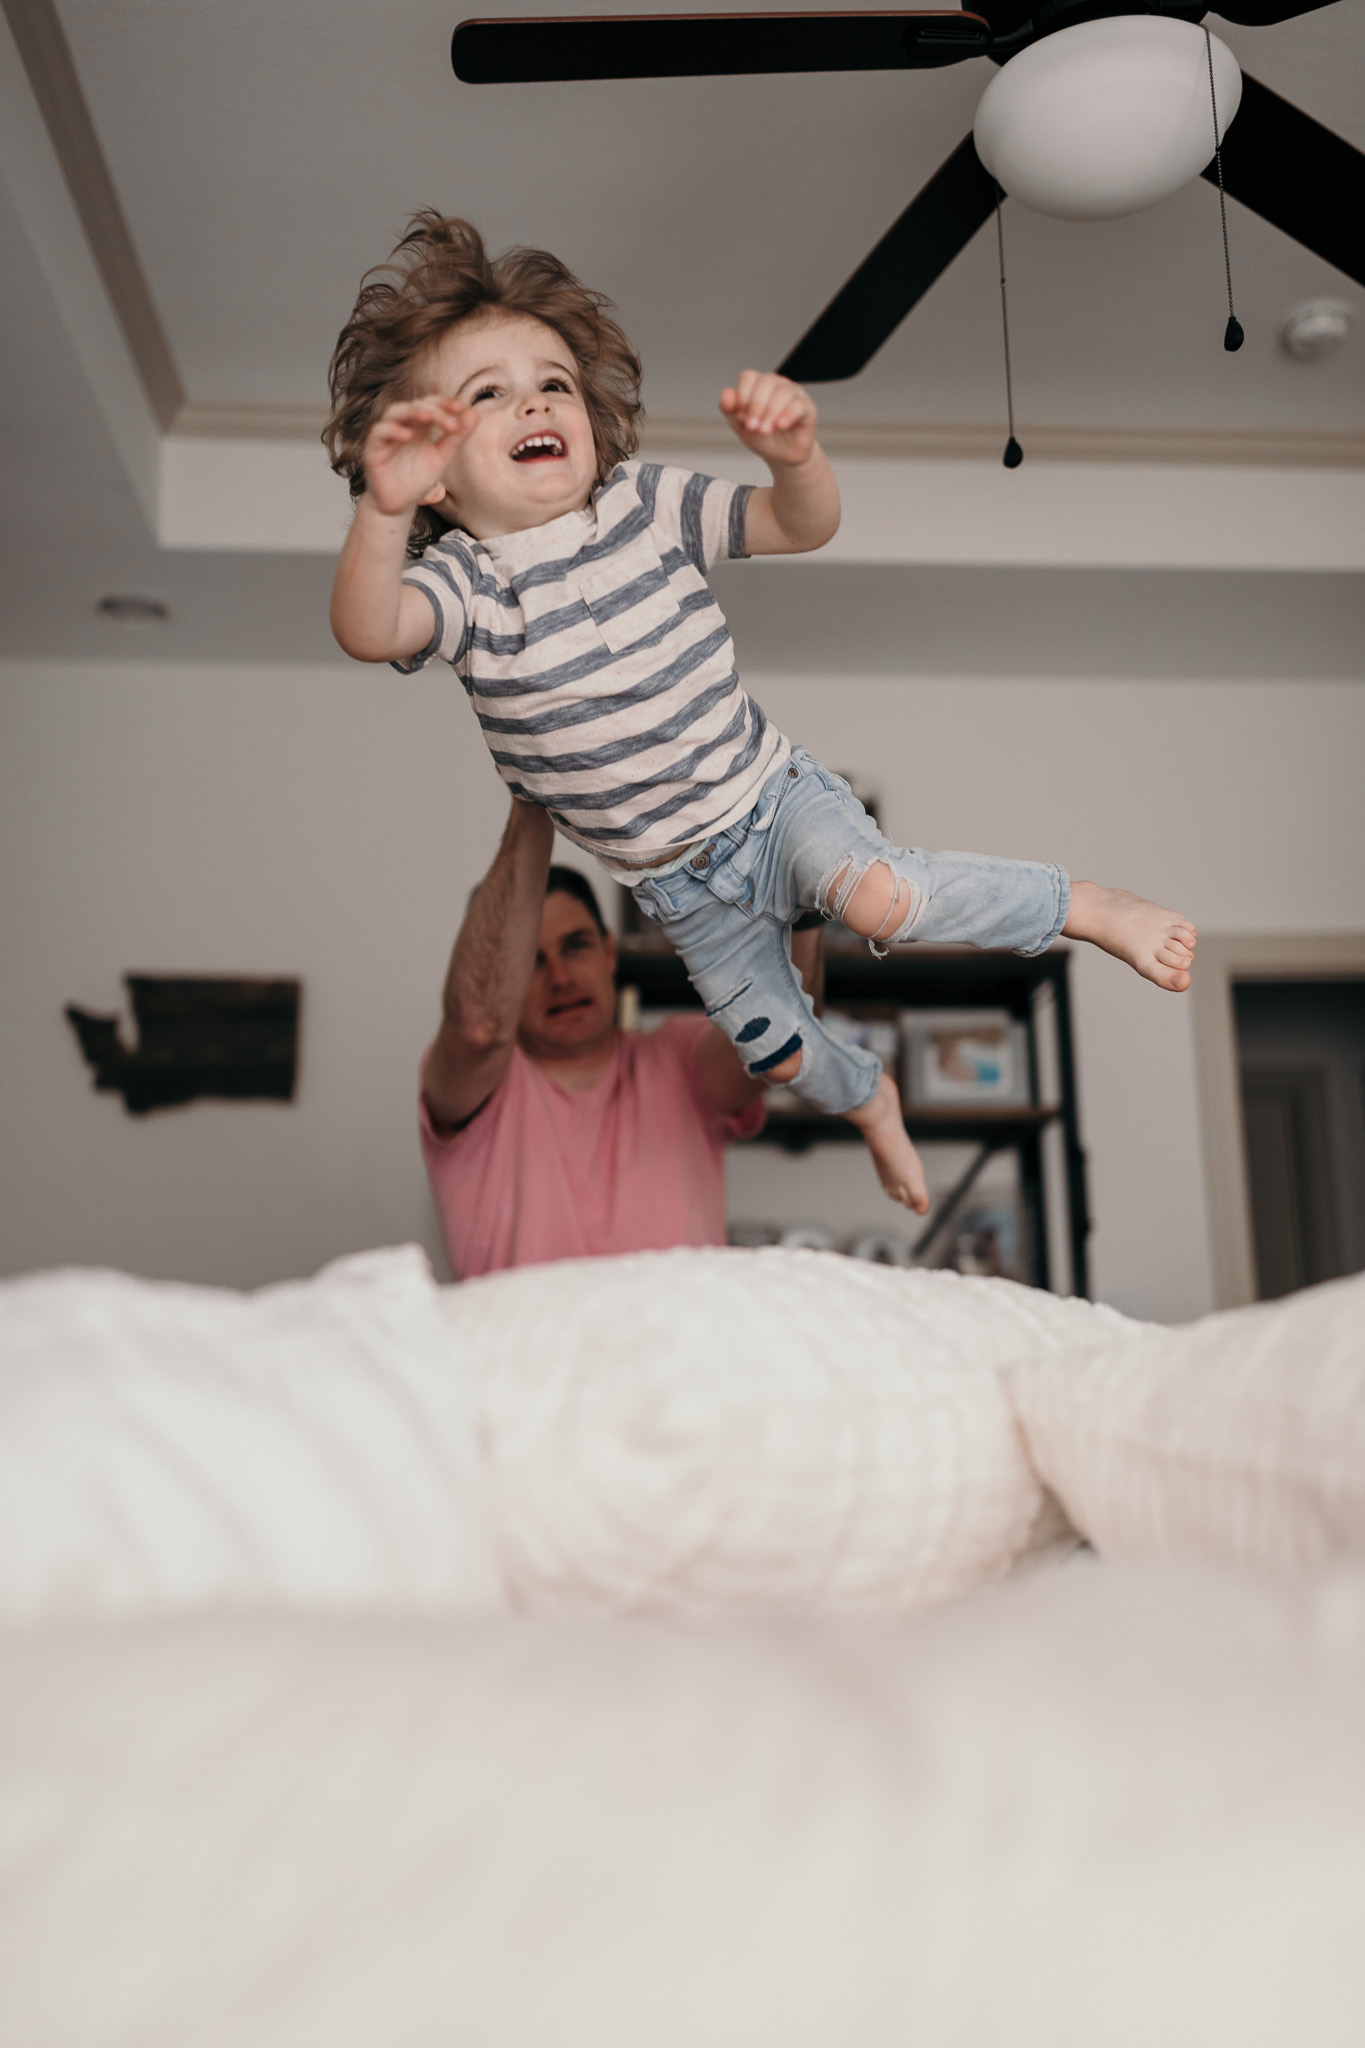 dad throwing son on bed